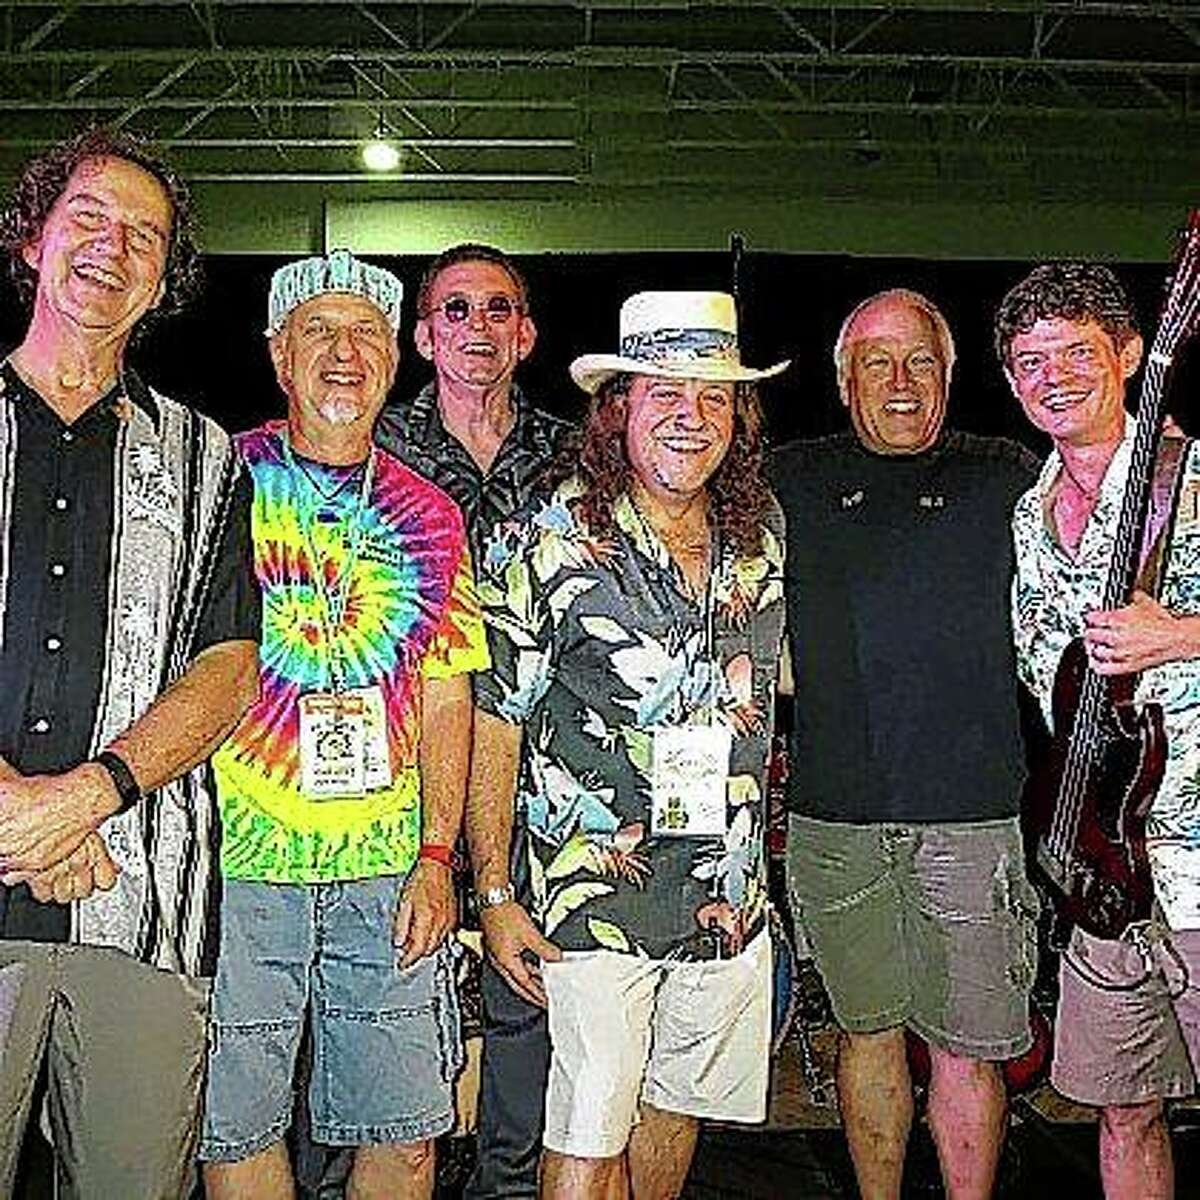 The Boat Drunks, a Champaign-based band that started as a Jimmy Buffett cover band before gaining an international fan base and attention from Buffett himself, will perform Thursday at the Morgan County Fair as part of the fair's Parrot Head Night.